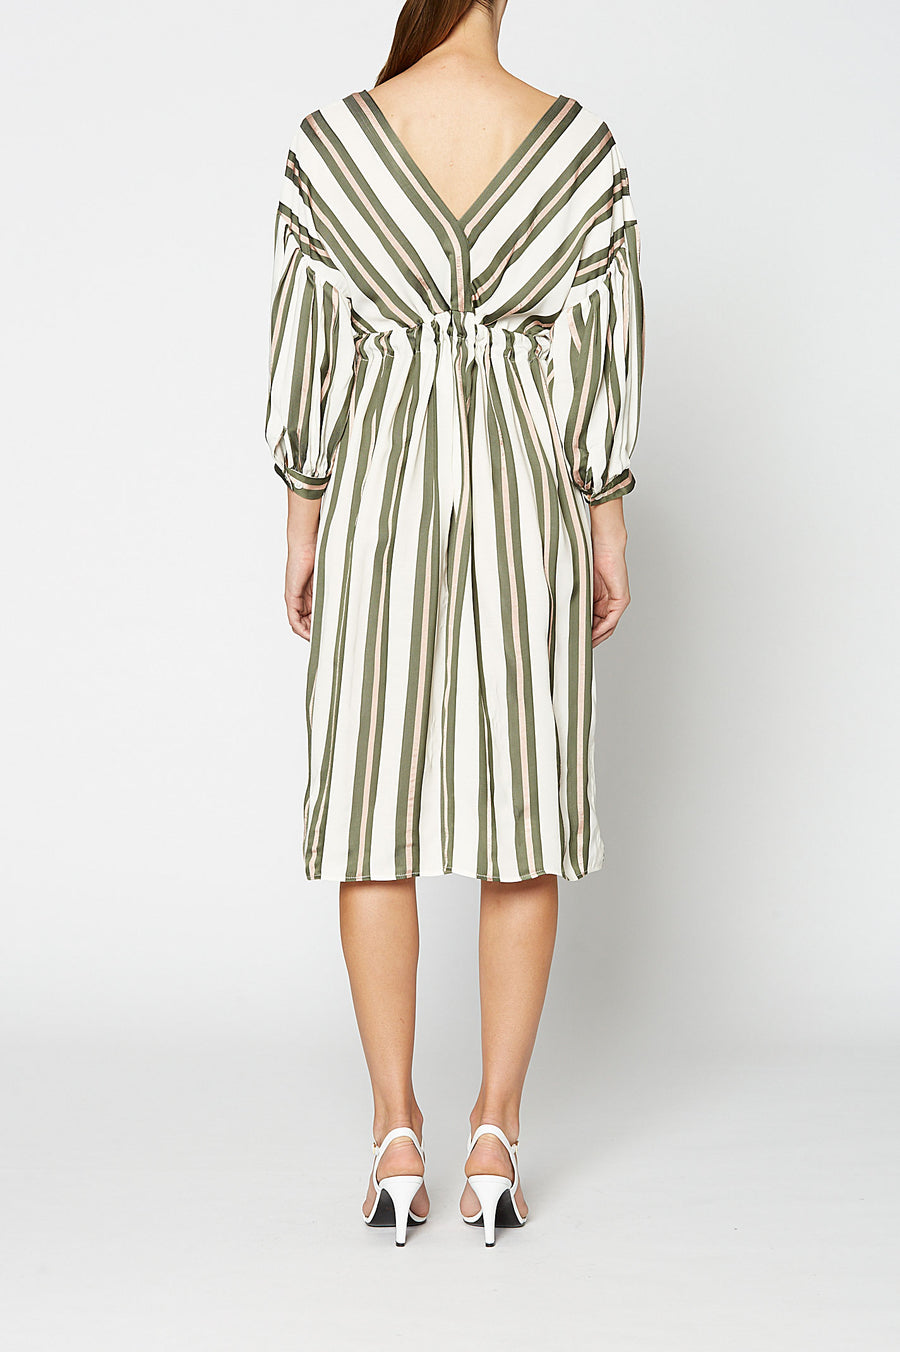 STRIPE VISCOSE DRESS, KHAKI color